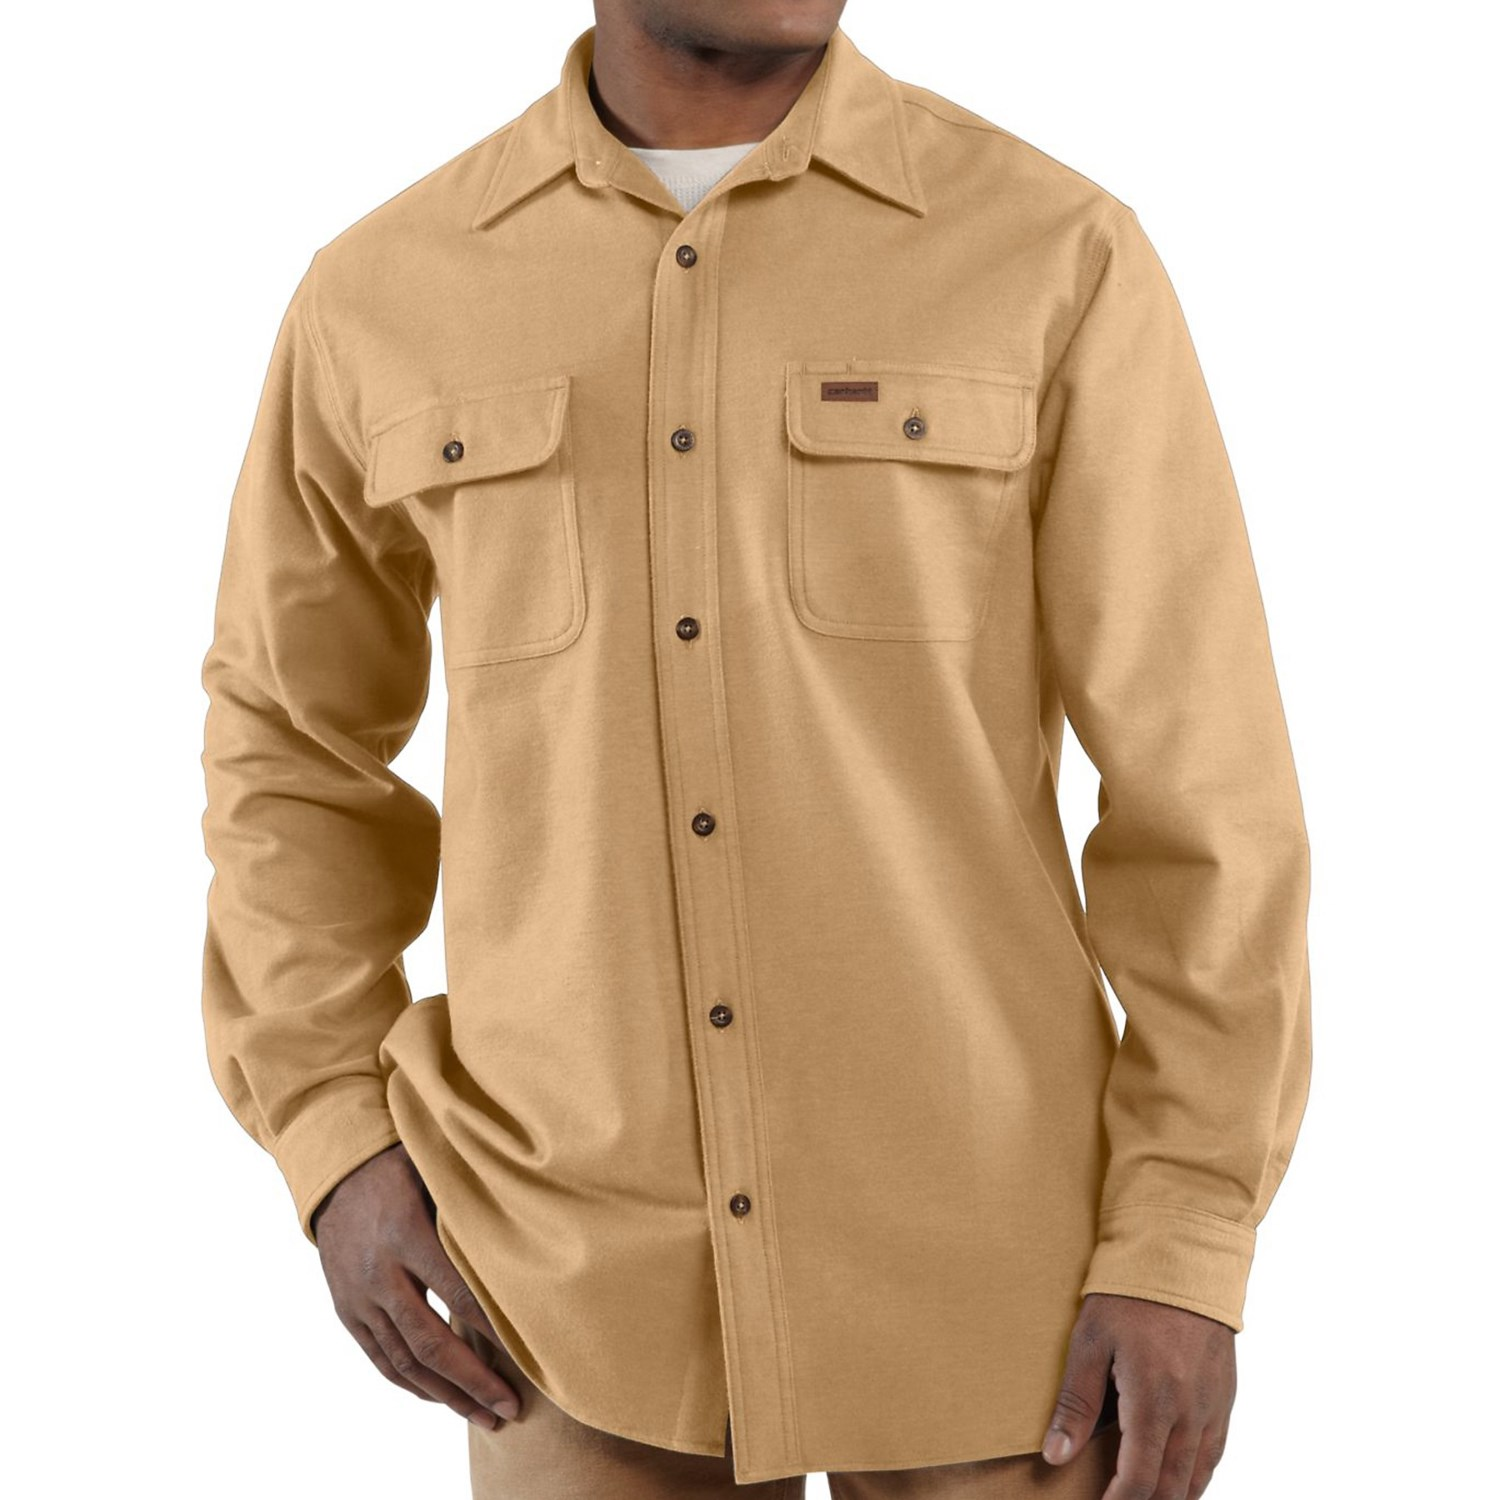 Carhartt chamois shirt for big and tall men for Big and tall long sleeve shirts